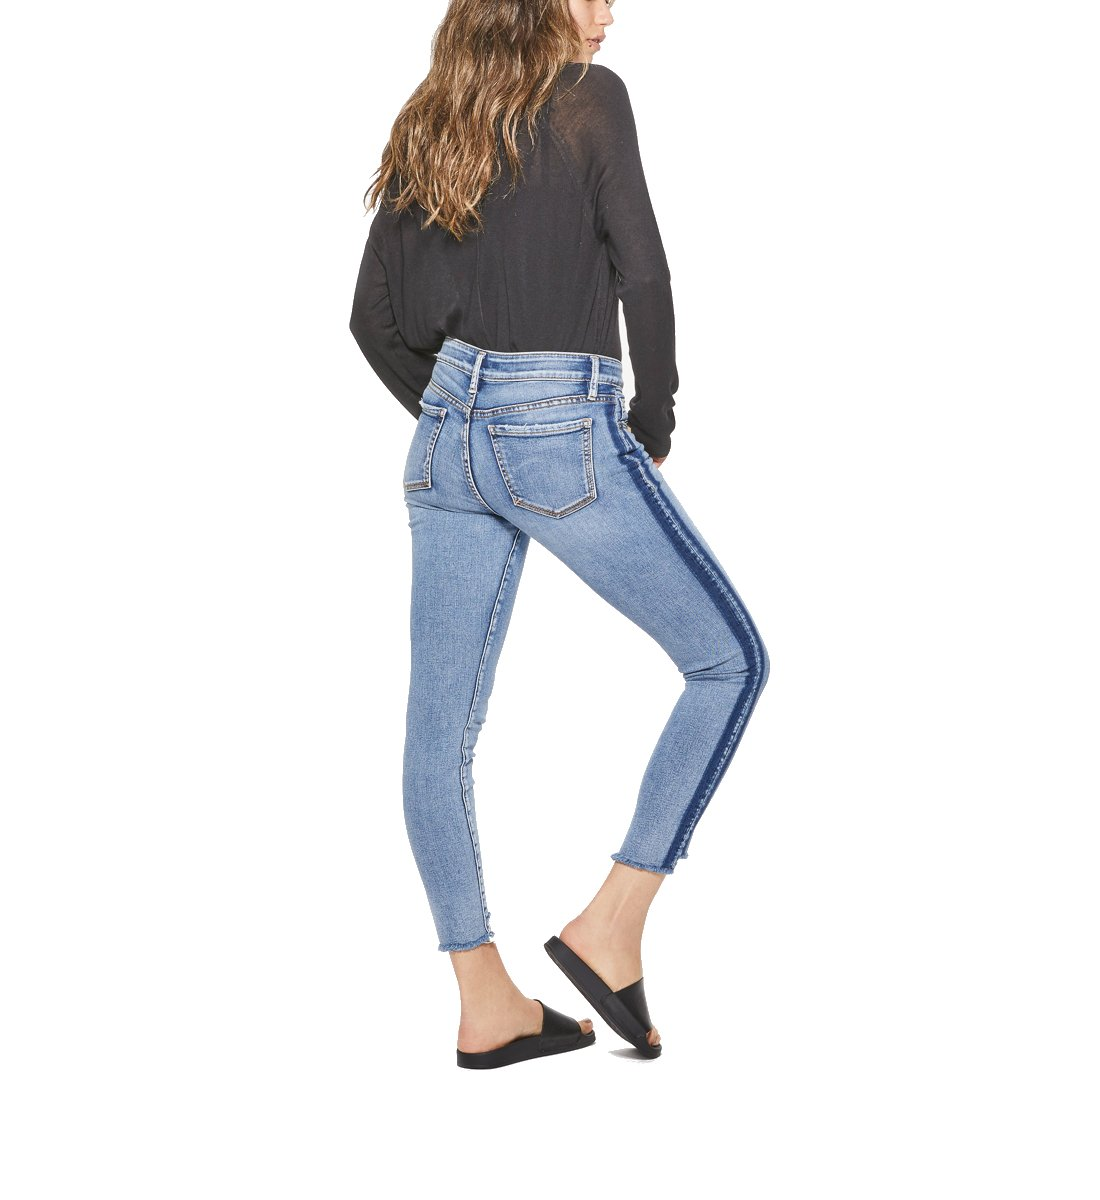 Silver Jeans Co. Women's Aiko Slightly Curvy Fit Mid Rise Ankle Skinny Jeans, Indigo Tuxedo, 27x27